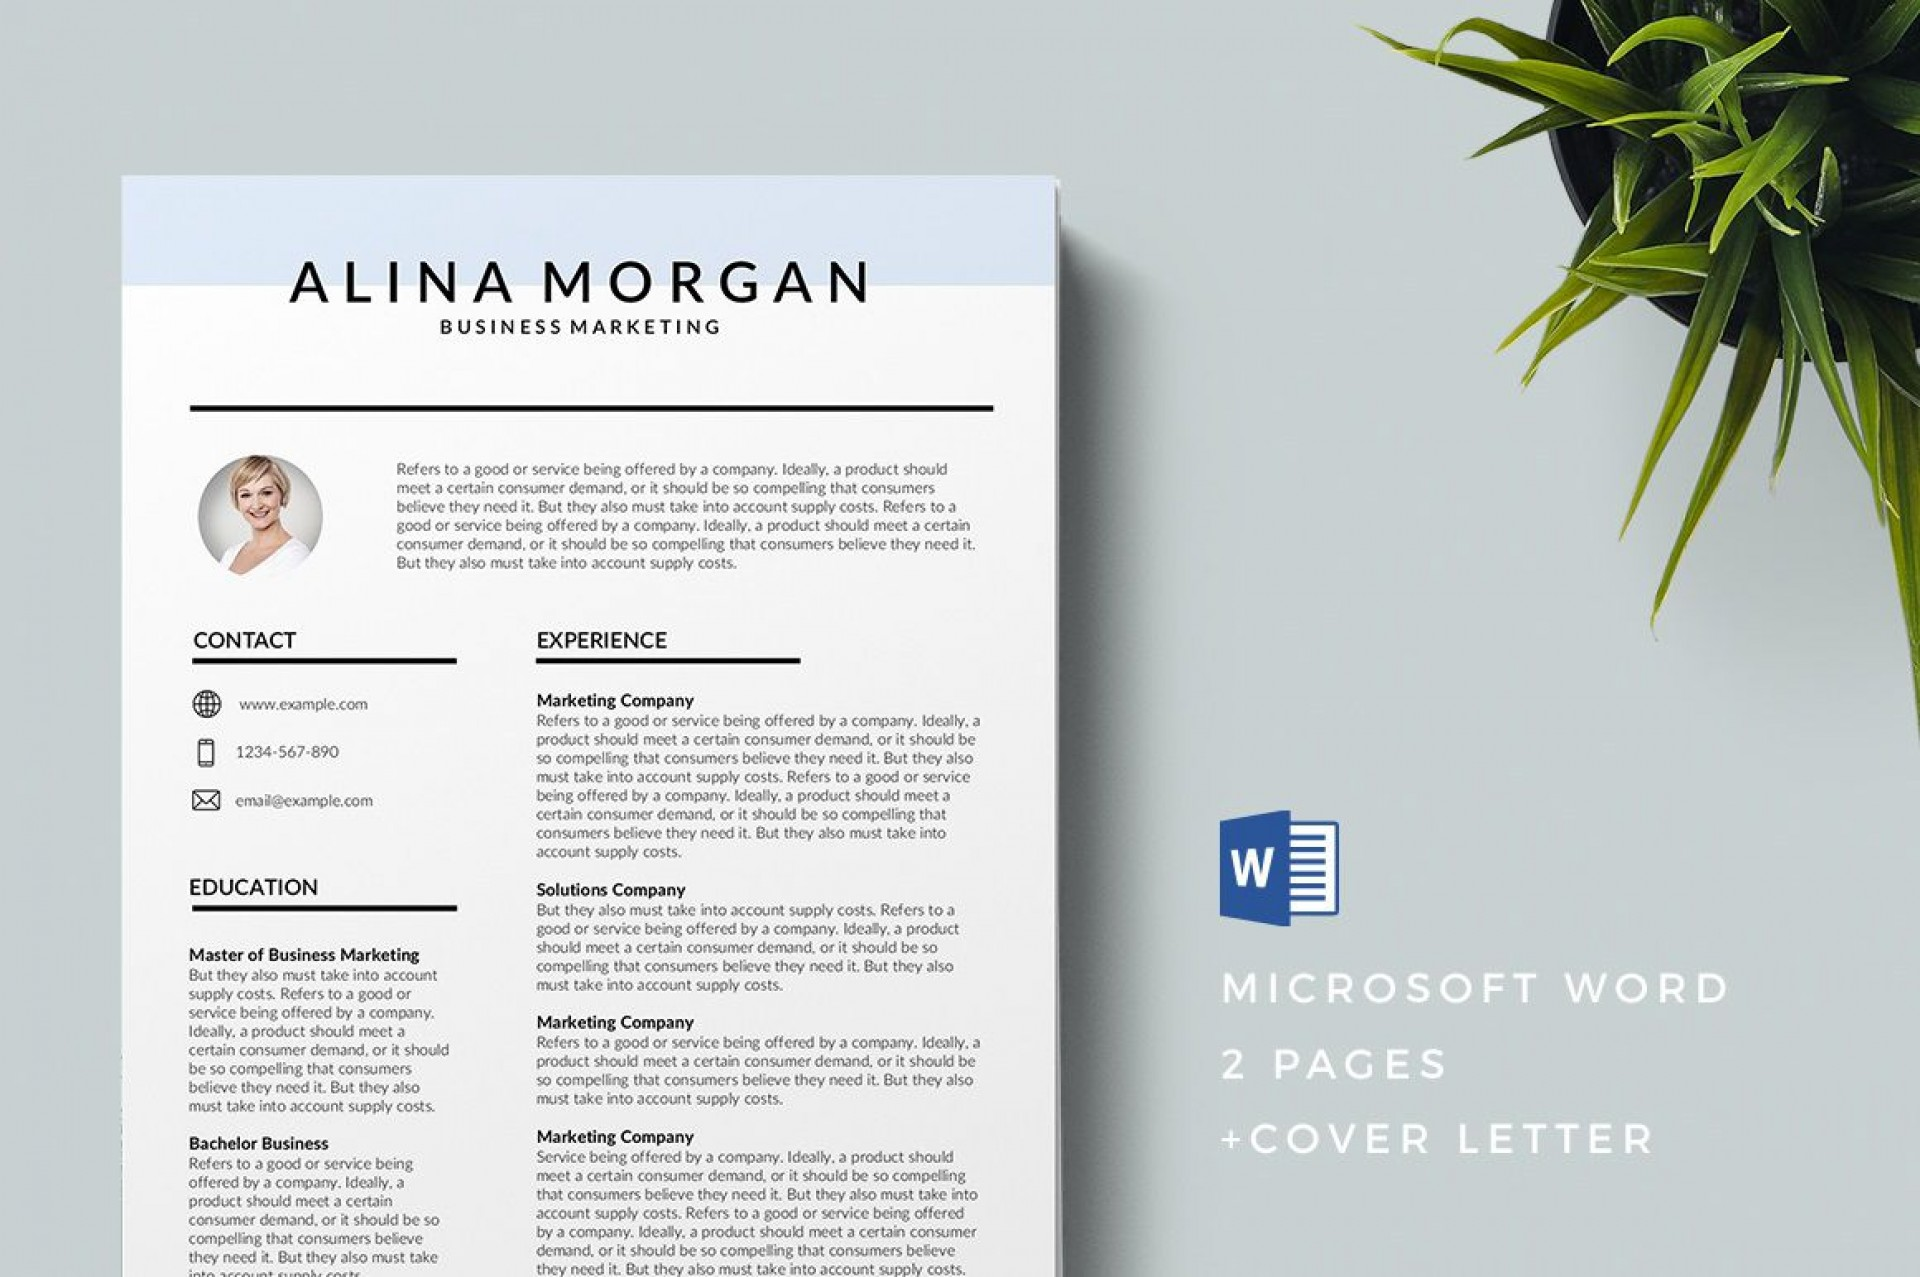 006 Unique Free Resume Template To Download Inspiration  Professional Format In M Word 2007 For Civil Engineer1920